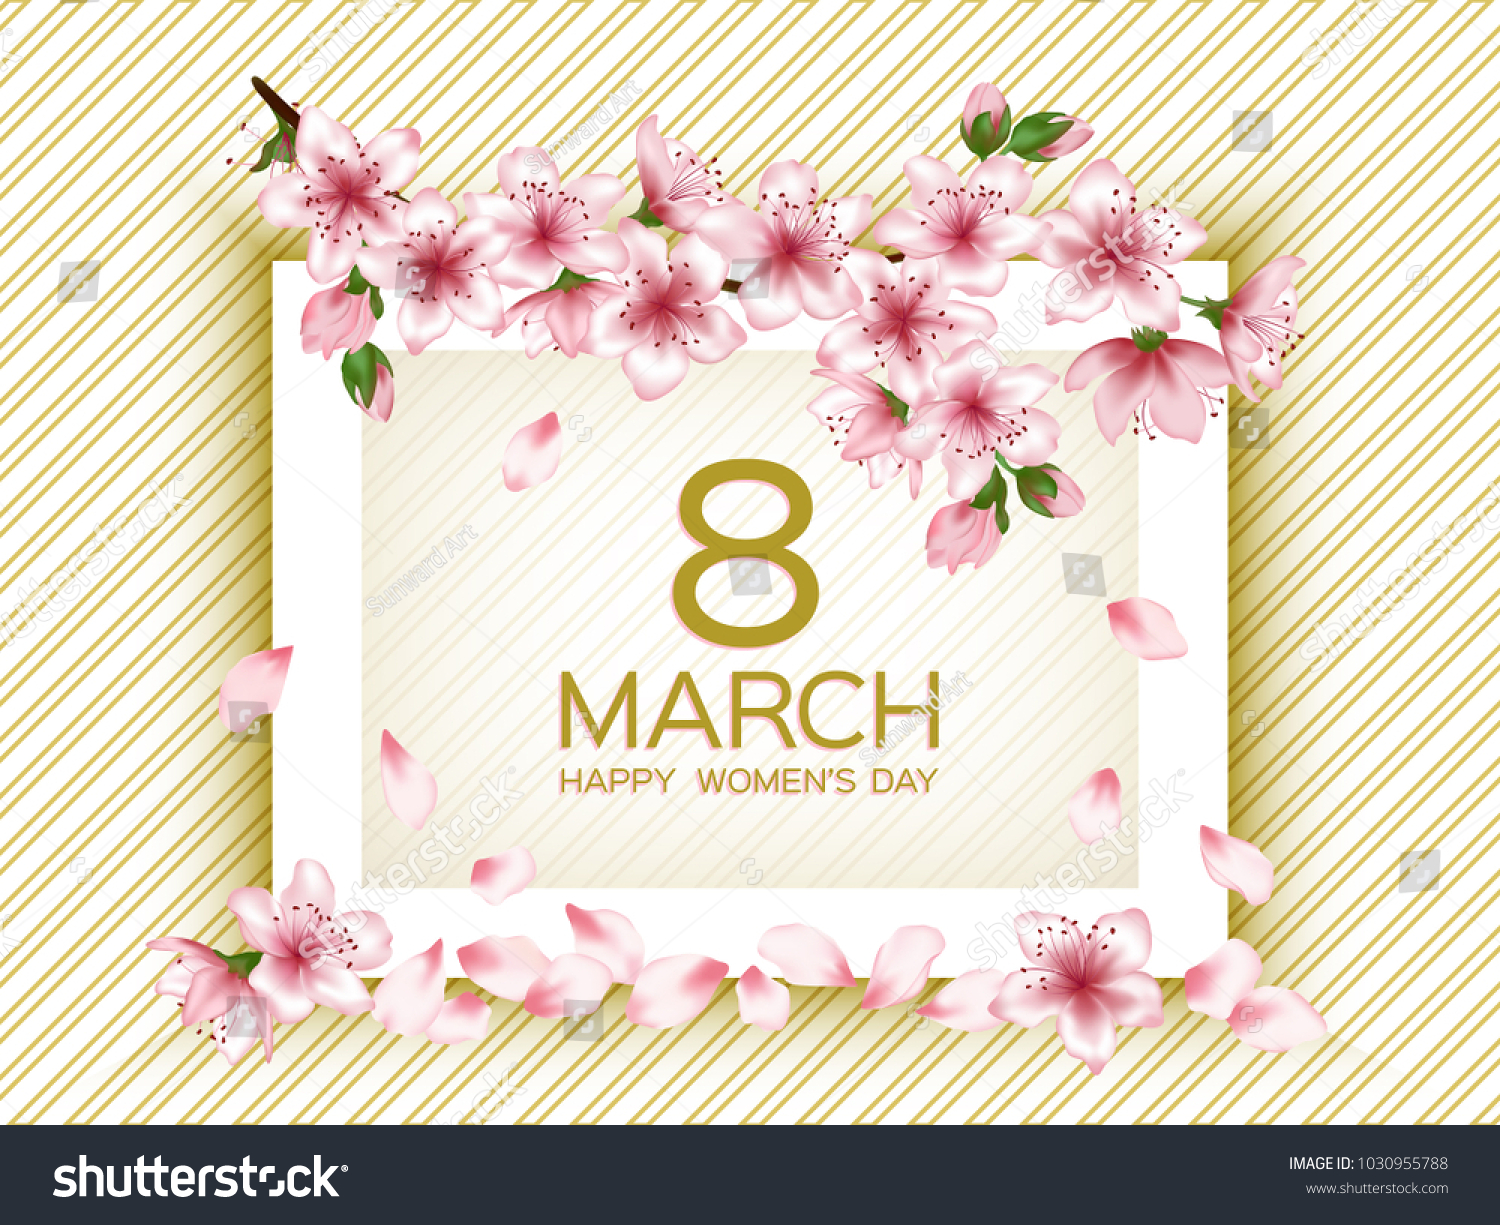 Gold pink 8 march happy womens stock vector 1030955788 shutterstock gold pink 8 march happy womens day vector card japanese cherry blossom pink sakura flowers kristyandbryce Images